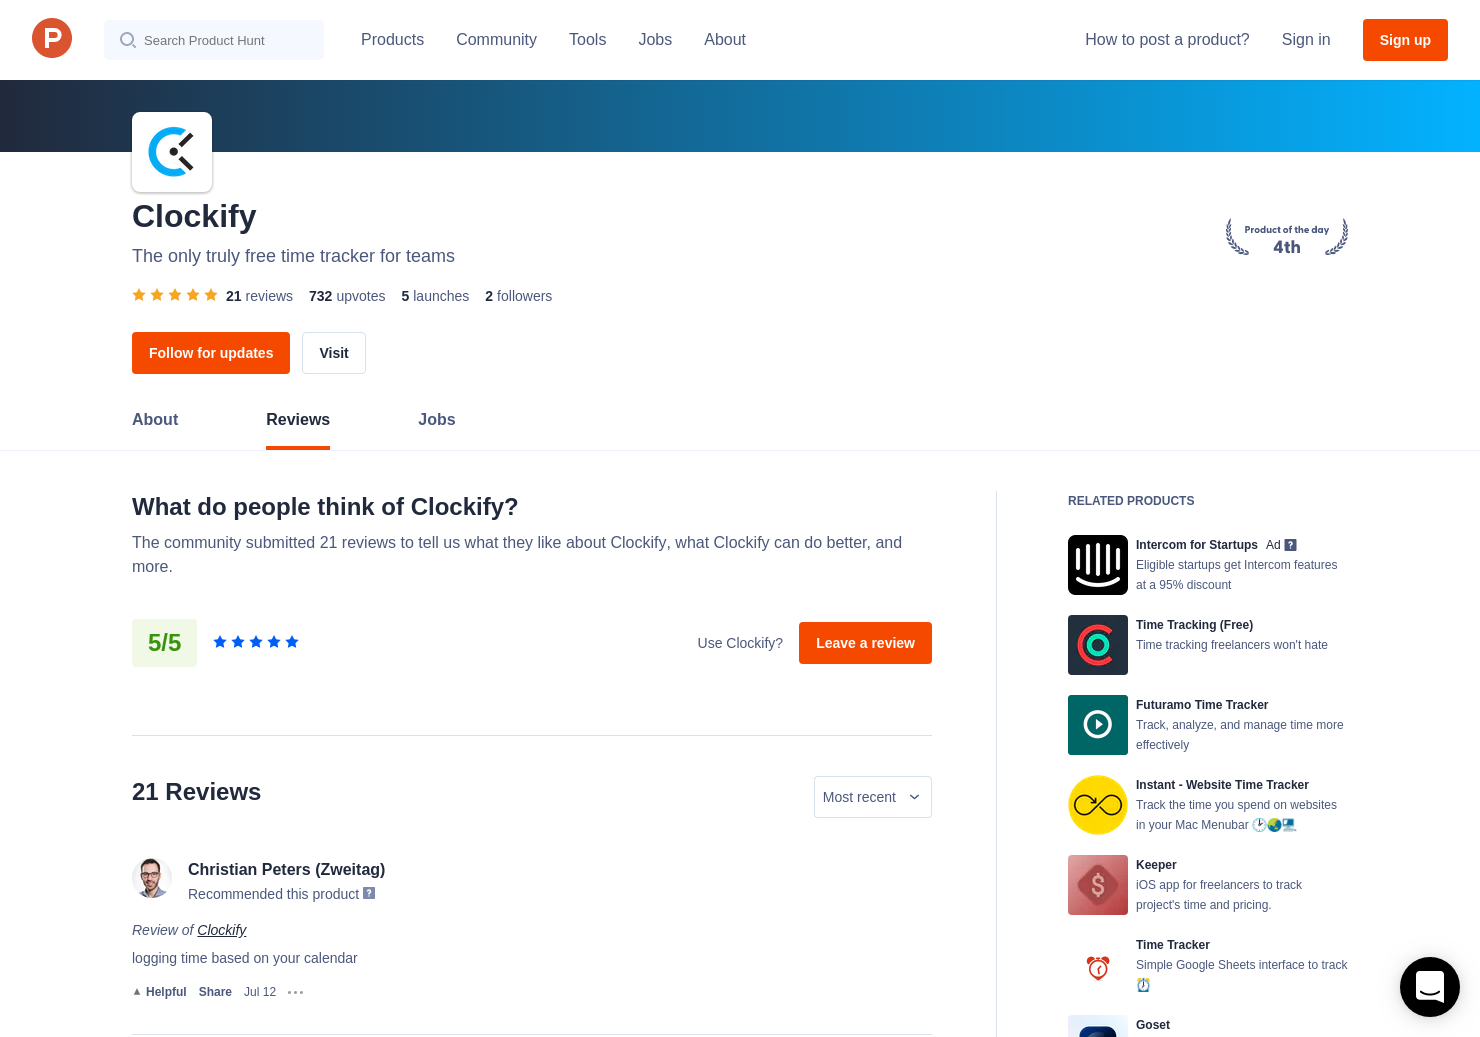 8 Clockify for Windows Reviews - Pros, Cons and Rating